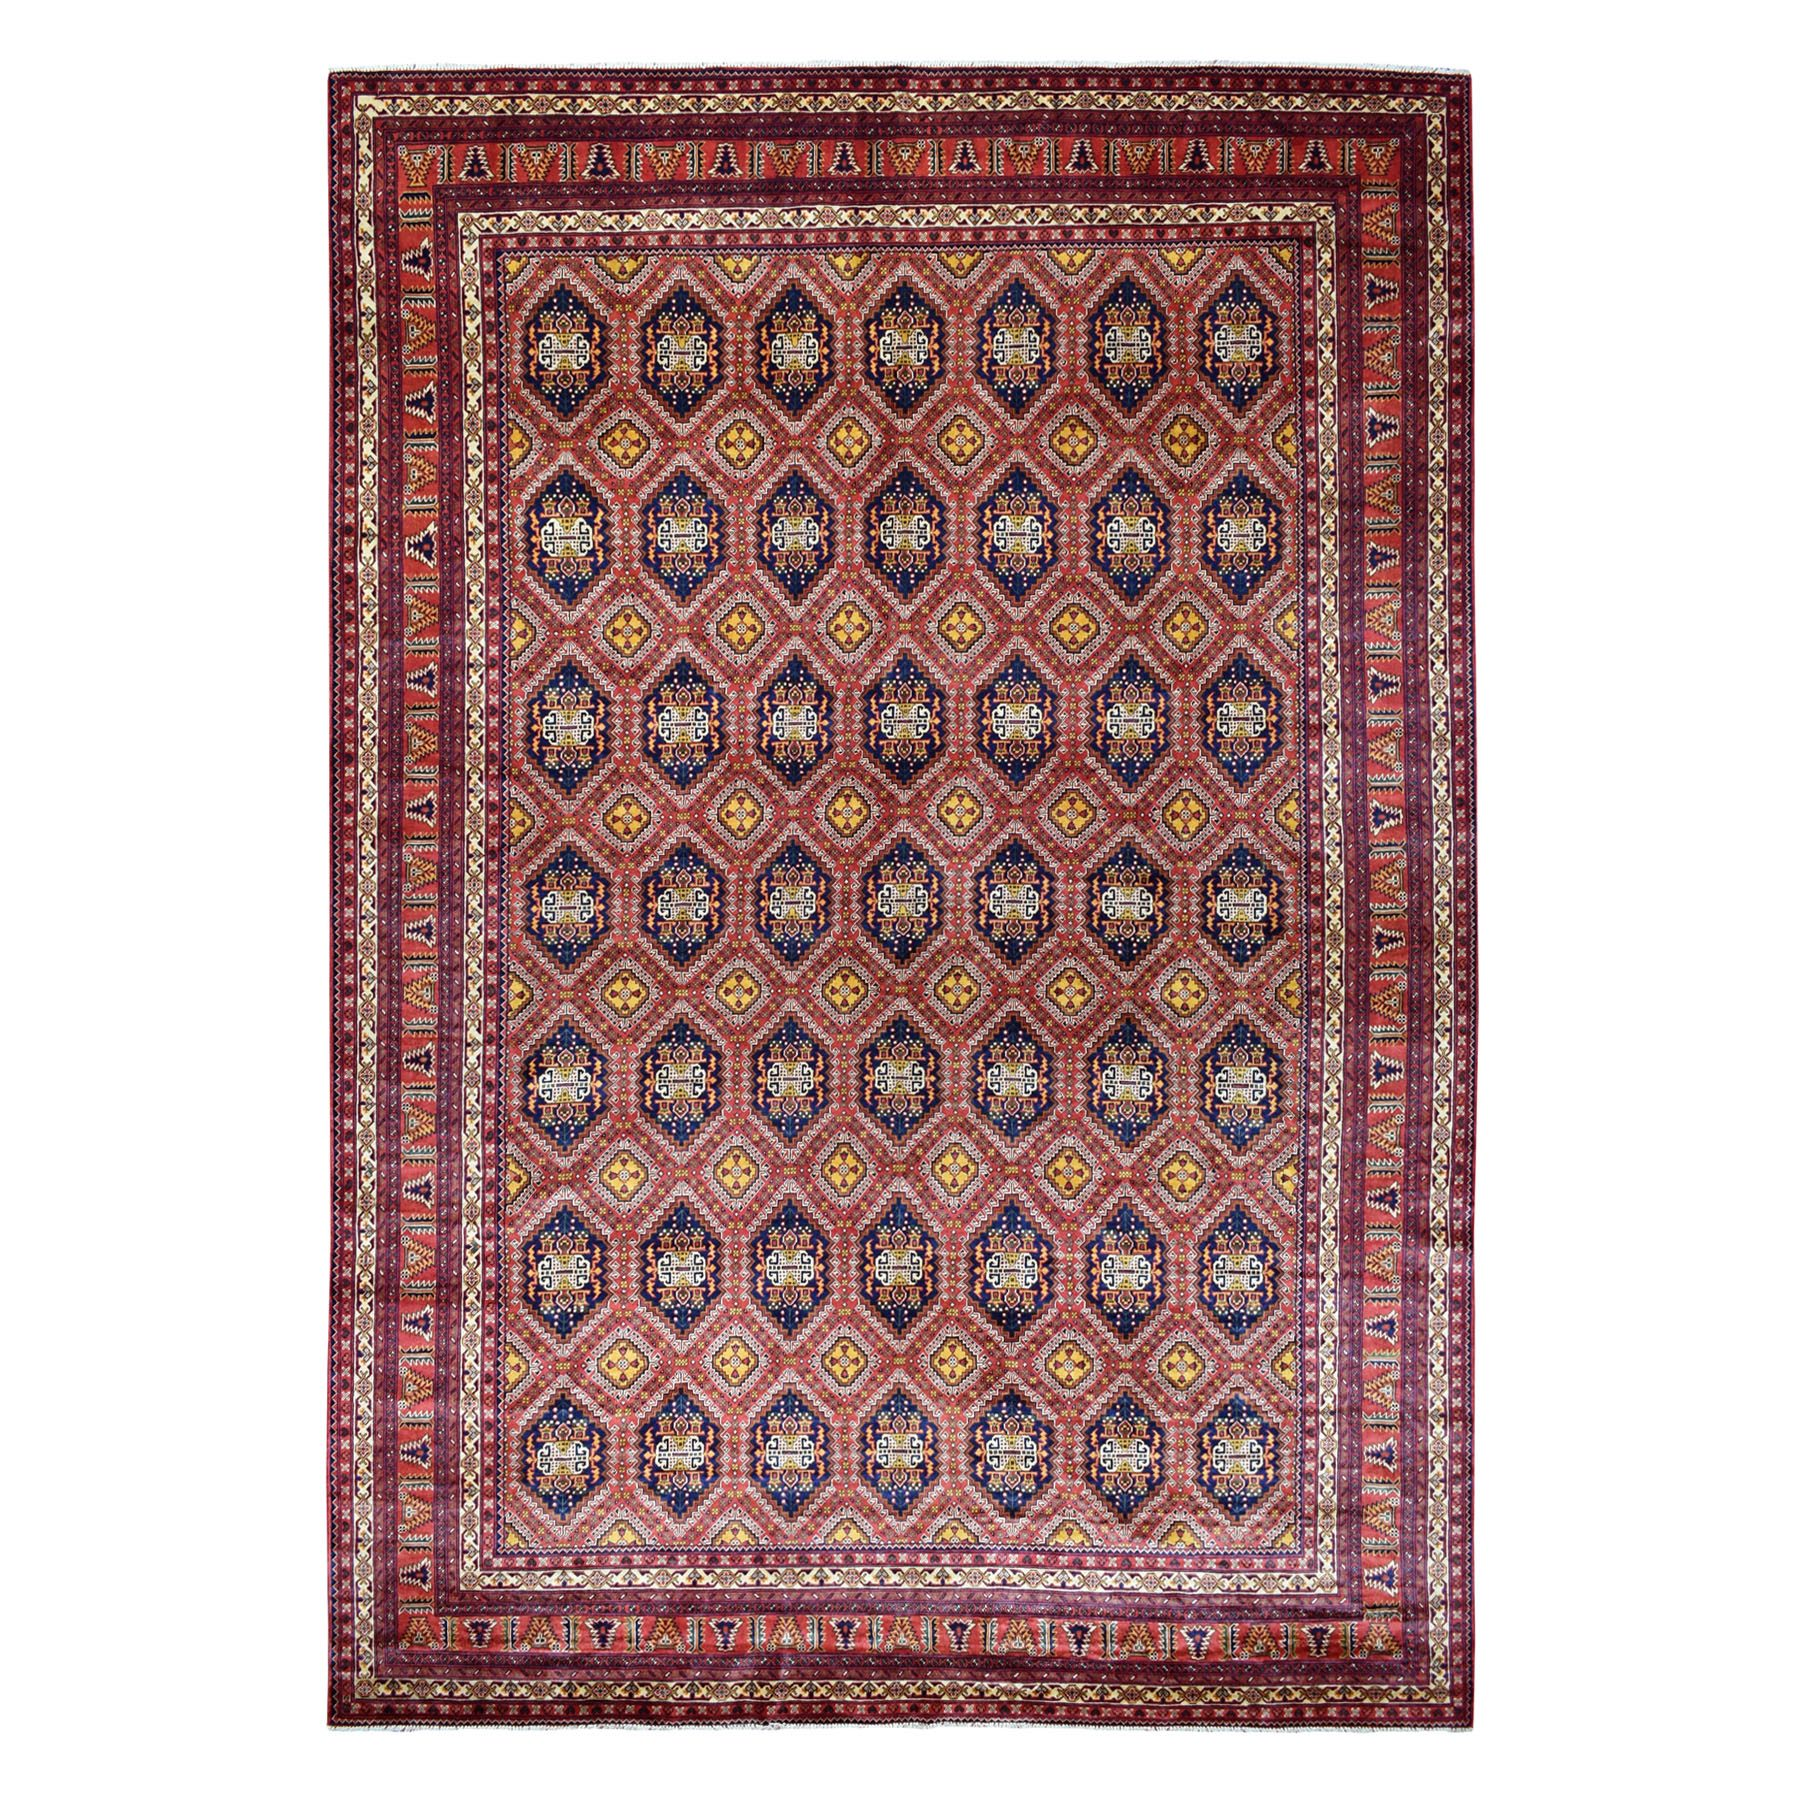 """10'X12'6"""" Repetitive Design Pure Wool Afghan Khamyab Hand-Knotted Oriental Rug moaeab6c"""